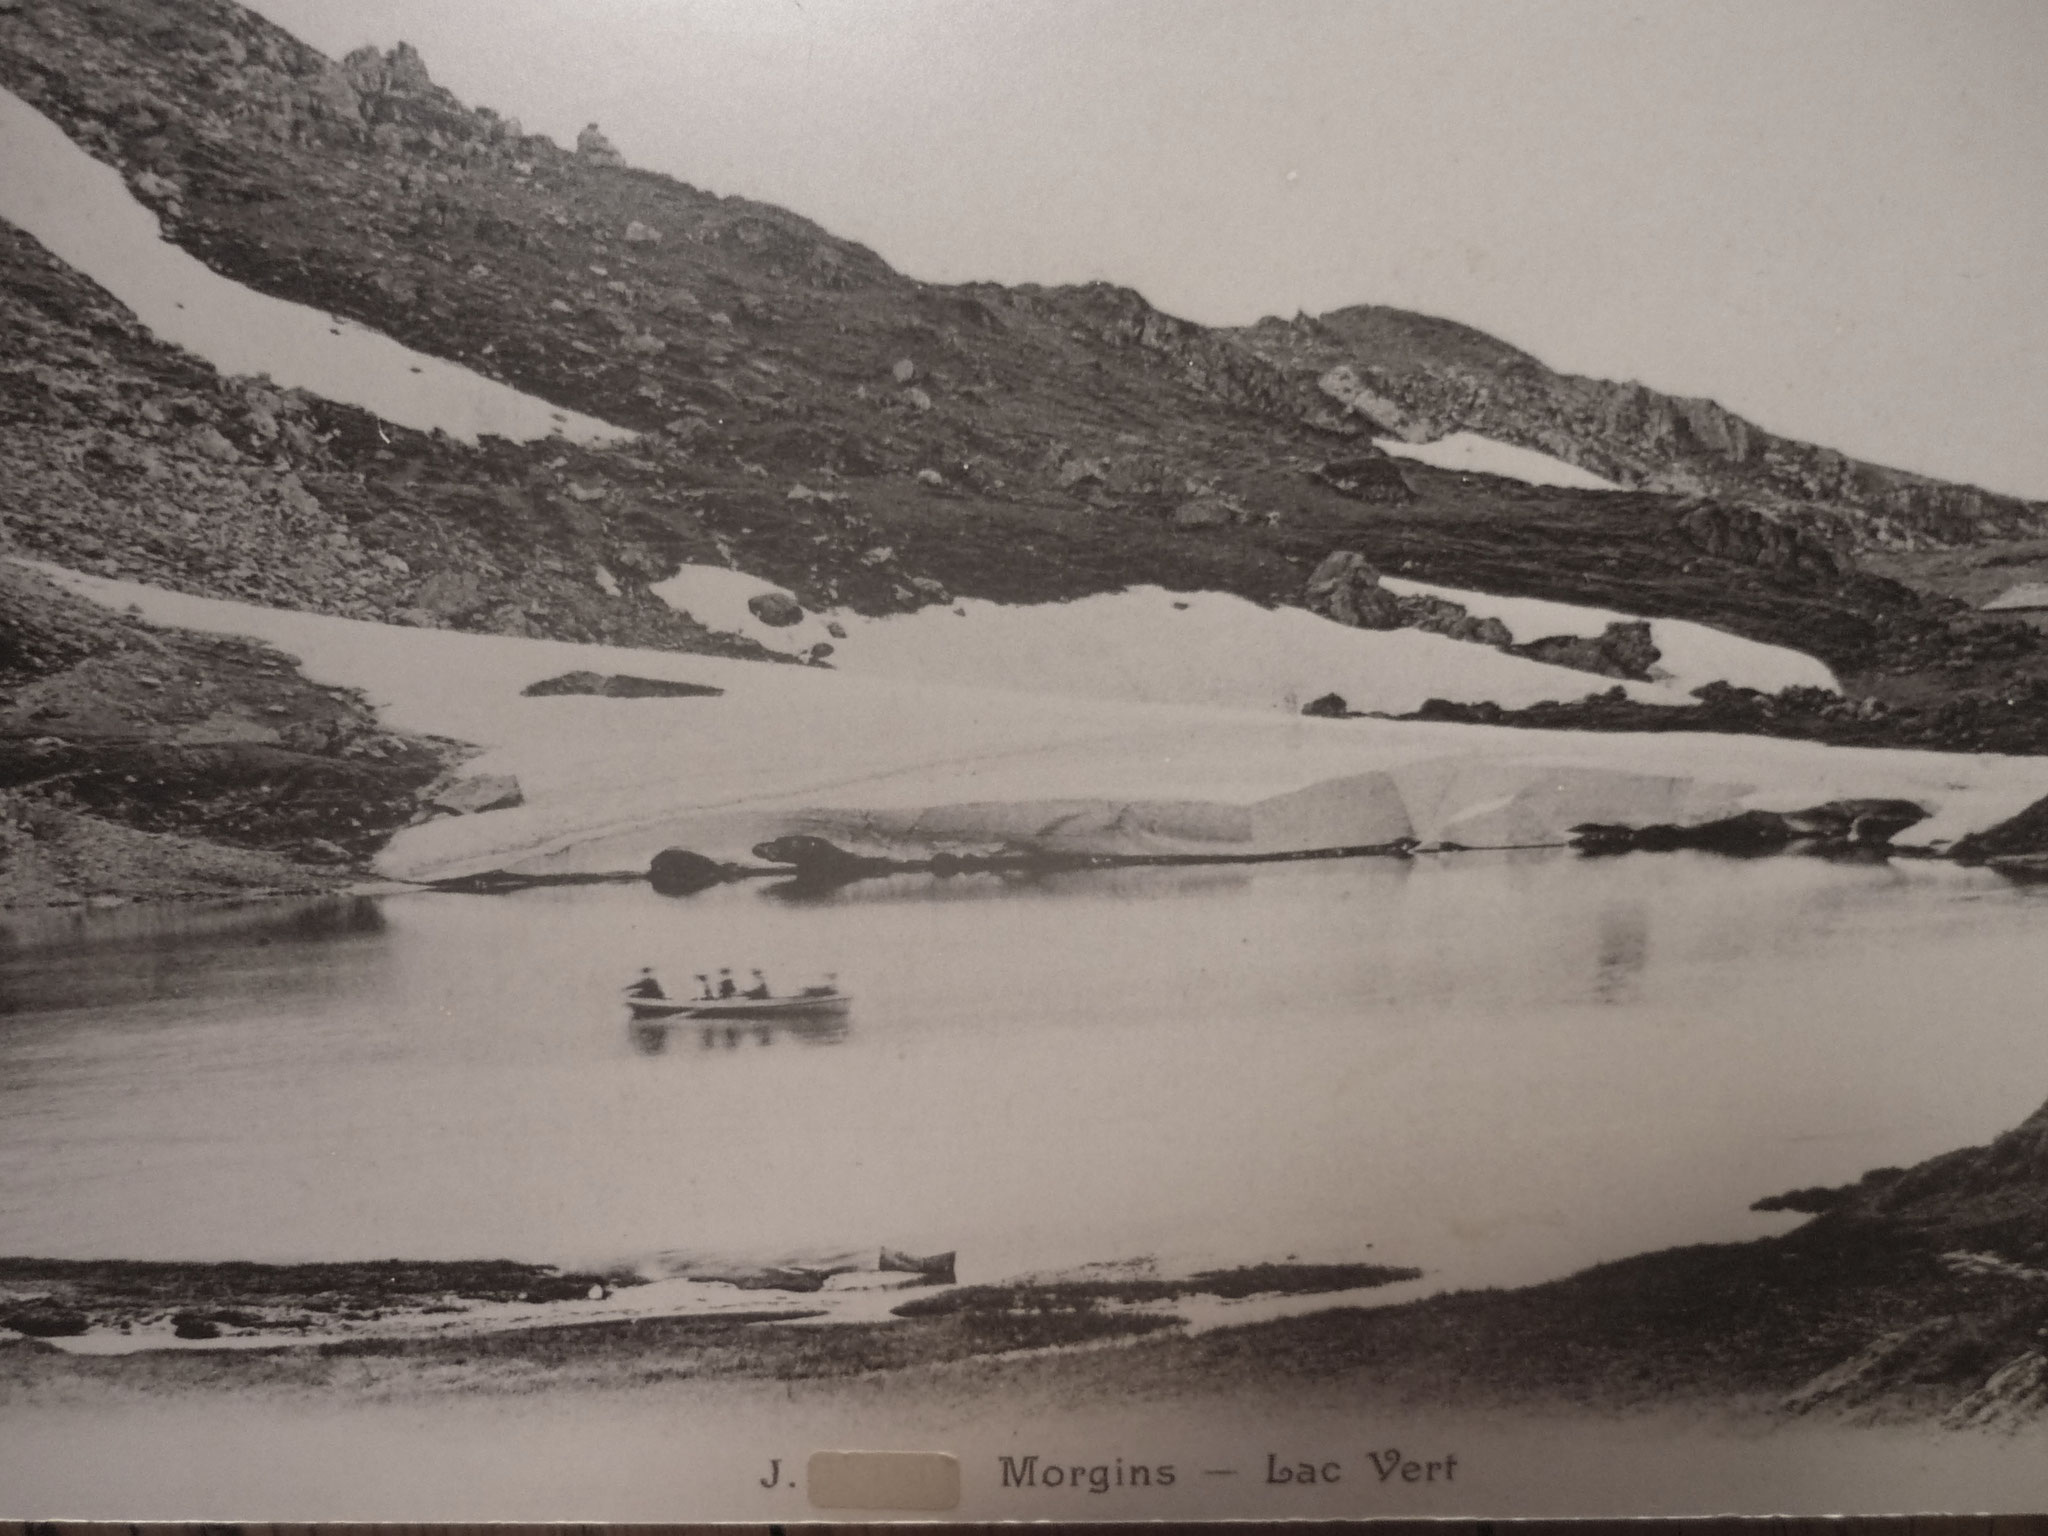 The Lac Vert at the beginning of the 20th century